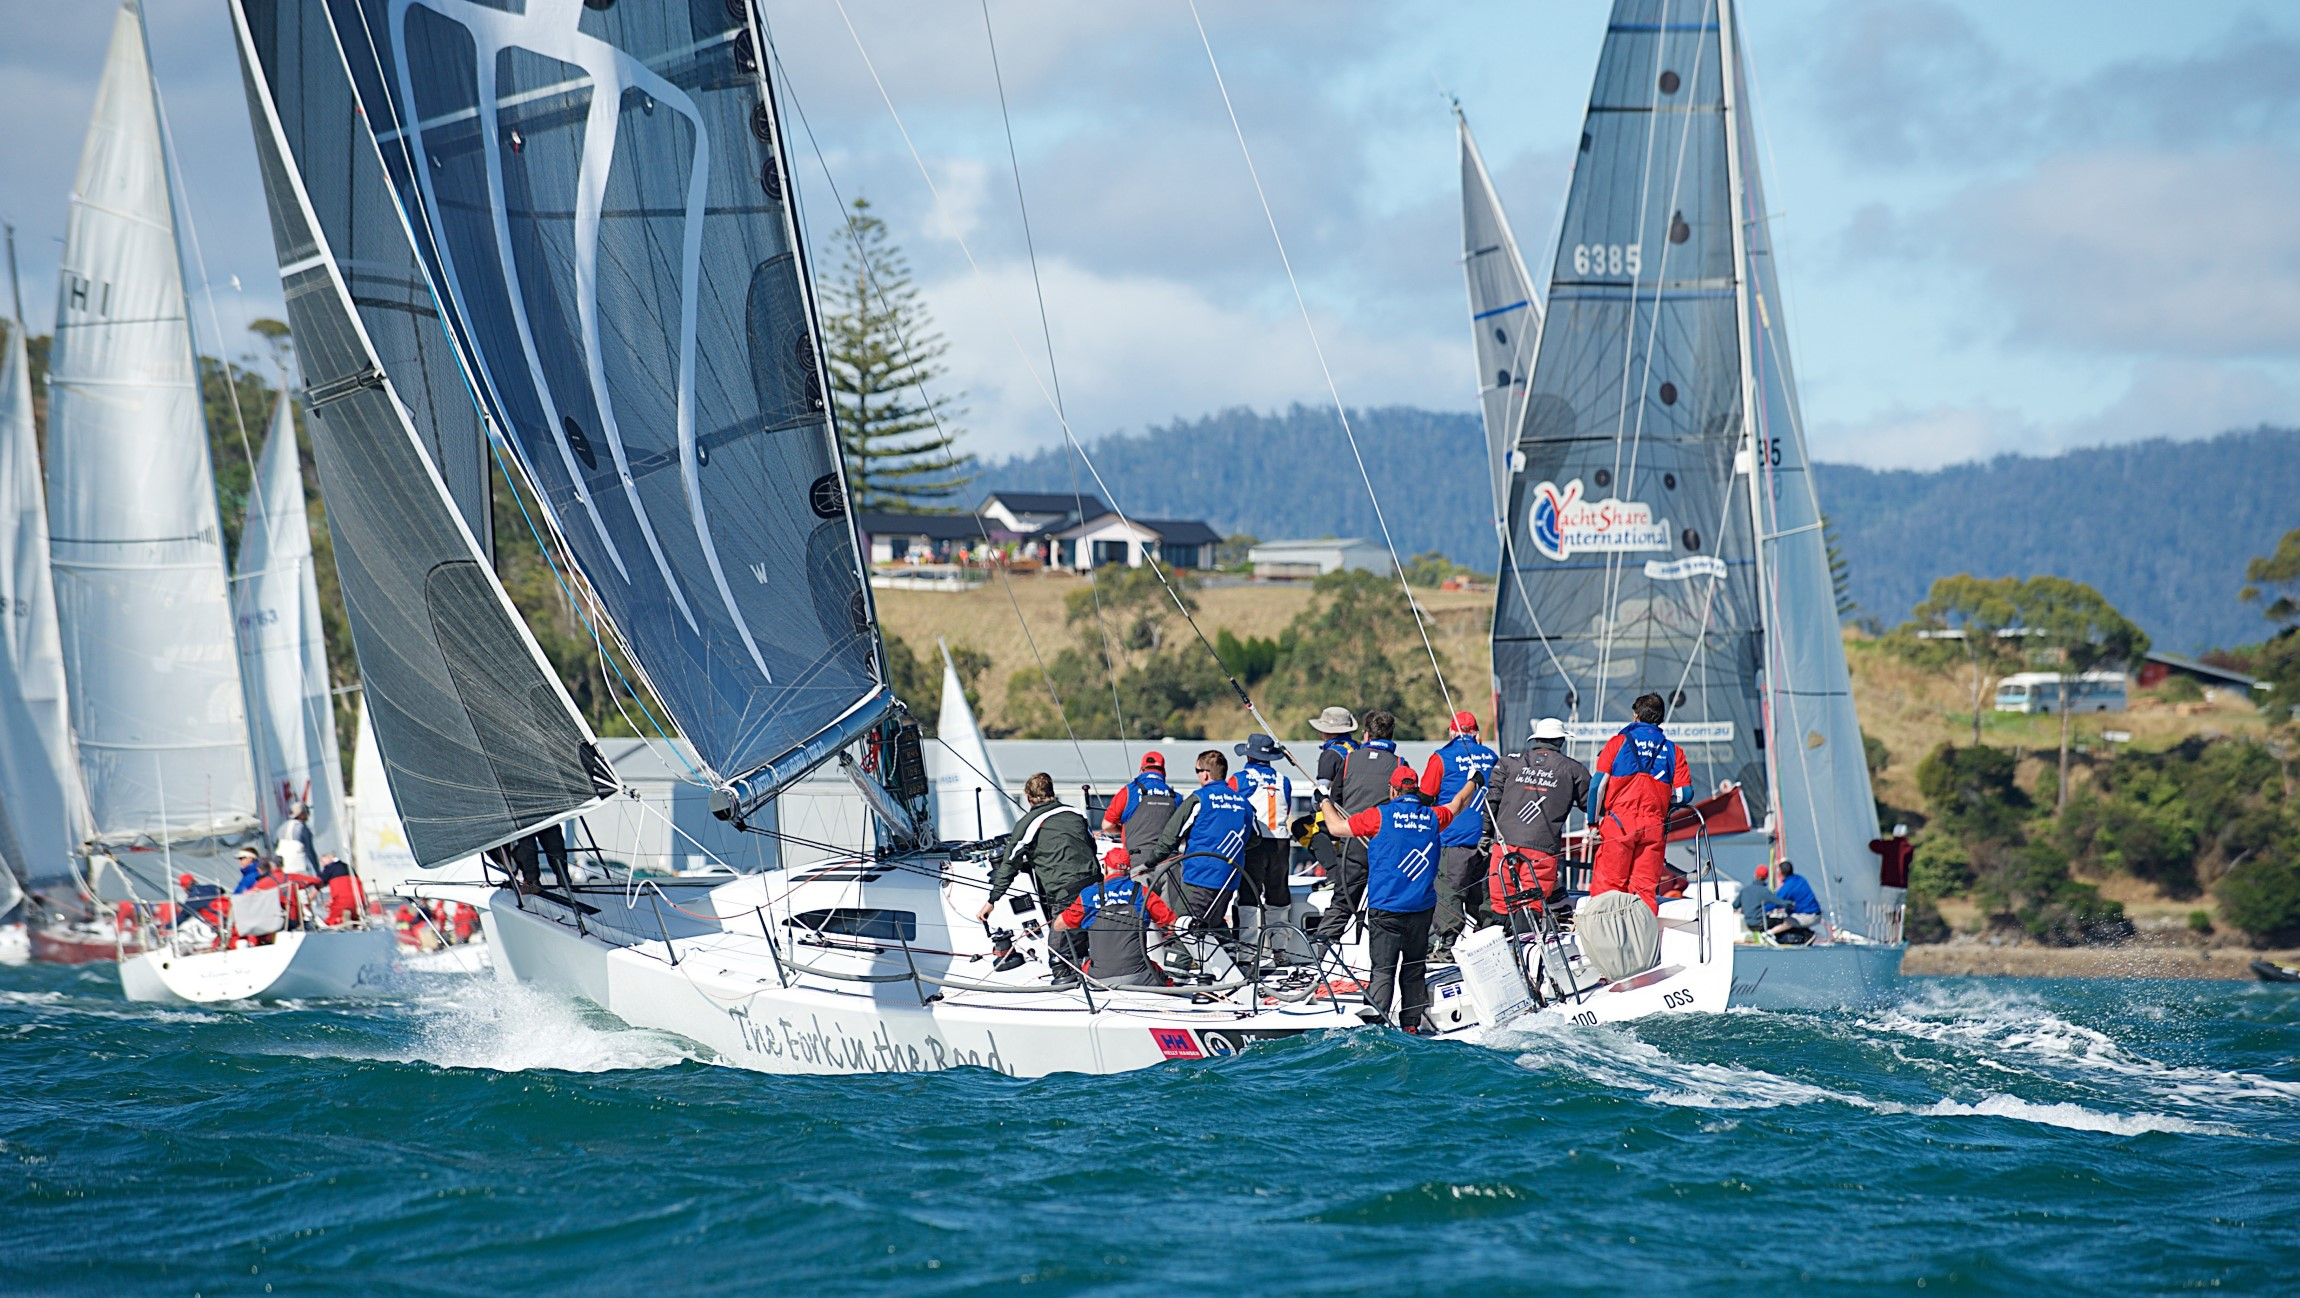 Fork in the Road and-others-start-action - Derwent-Sailing-Squadron-pic